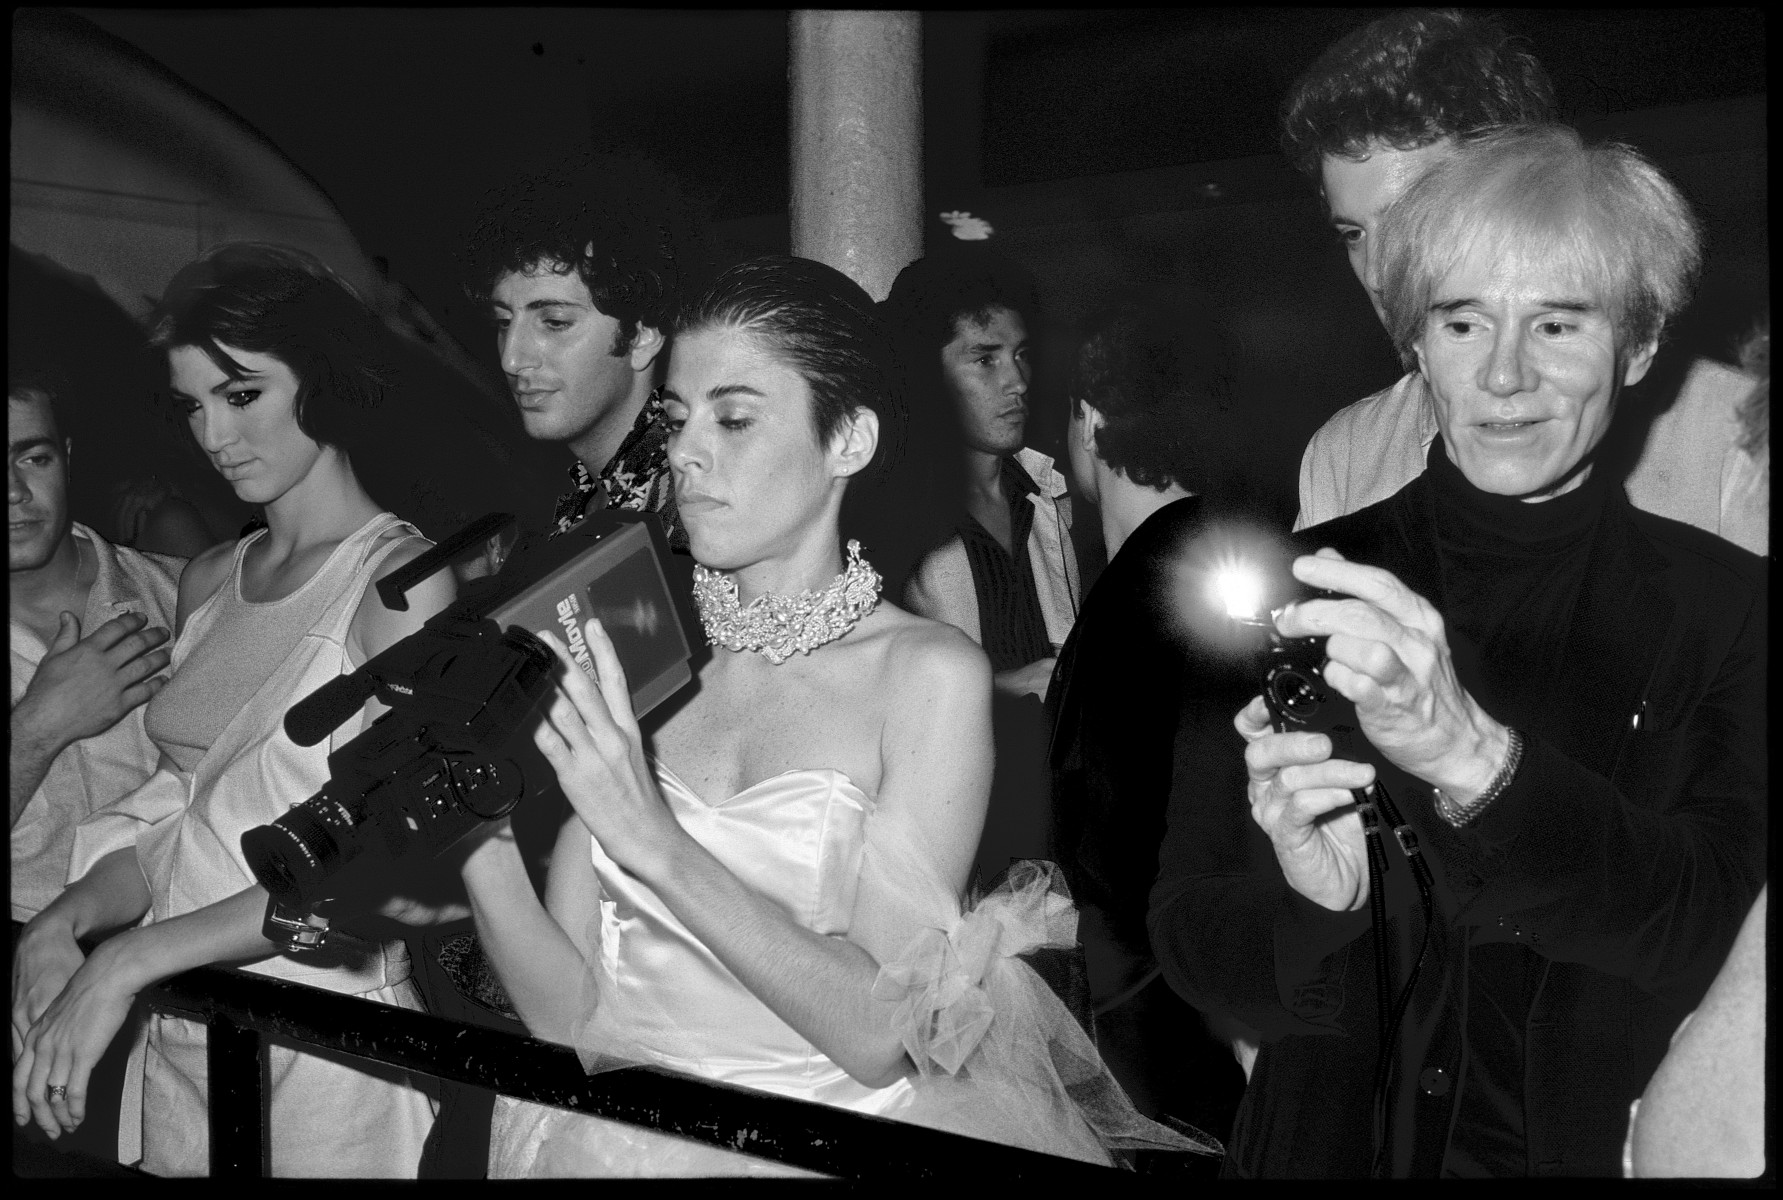 Andy Warhol at the Area Club, New York 1984